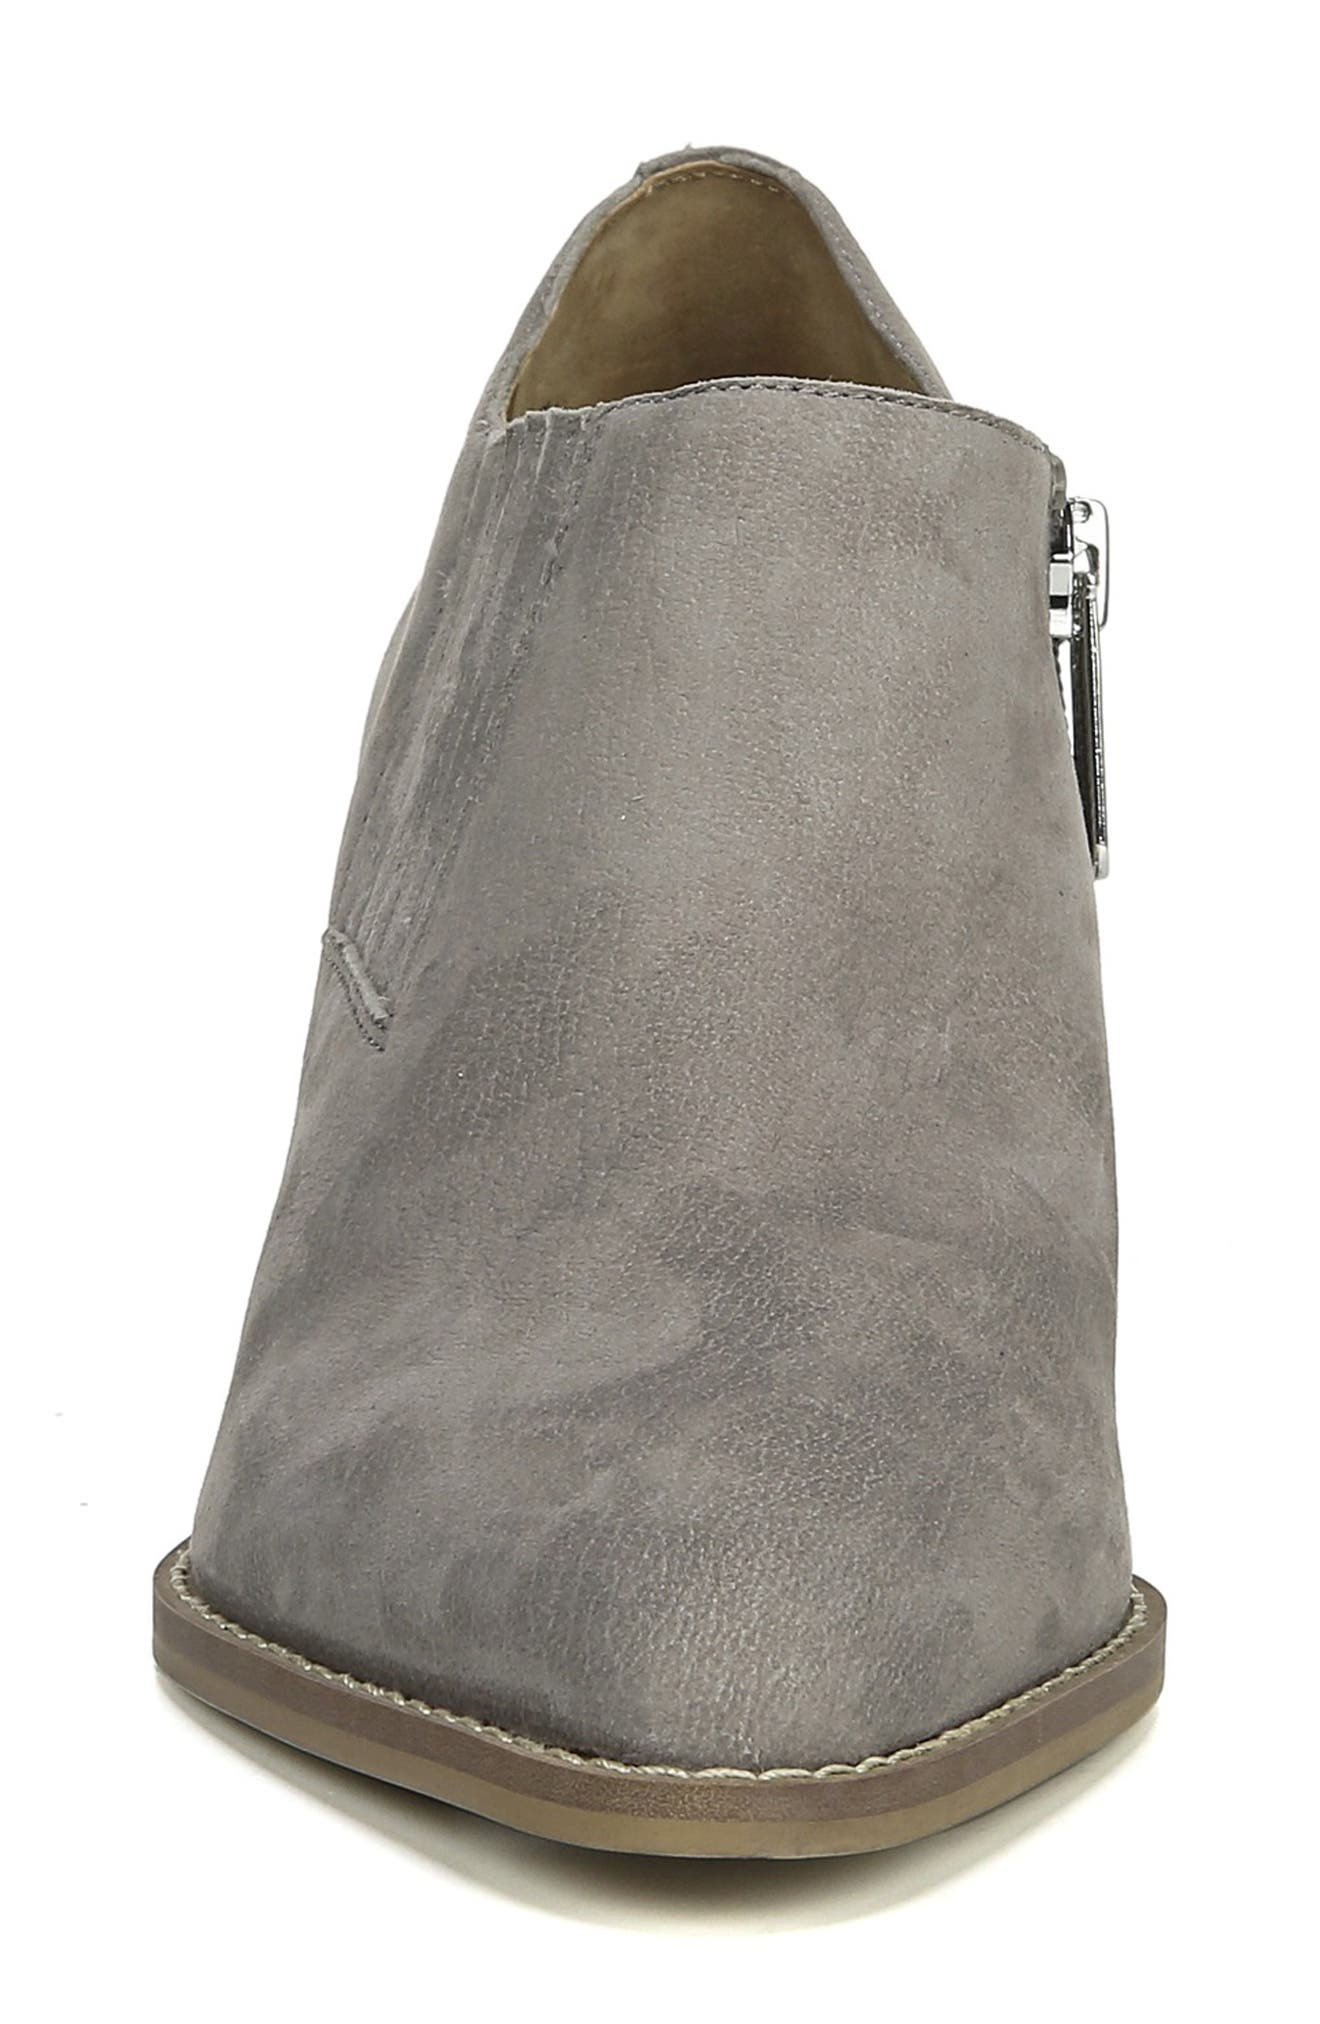 Camella Bootie,                             Alternate thumbnail 4, color,                             GREYSTONE NUBUCK LEATHER